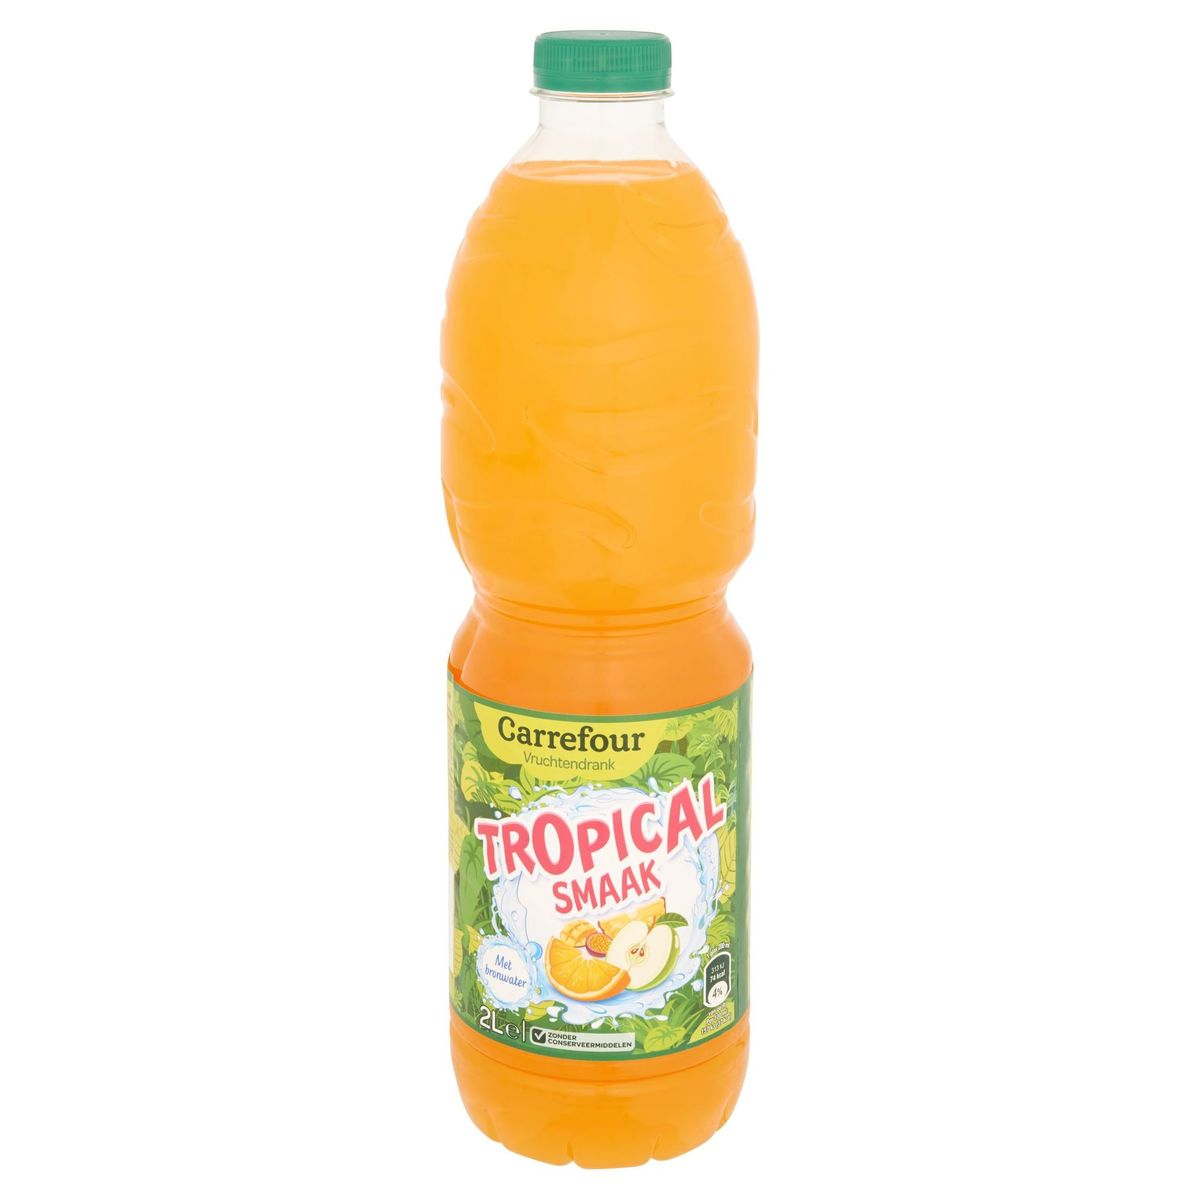 Carrefour Tropical Smaak 2 L